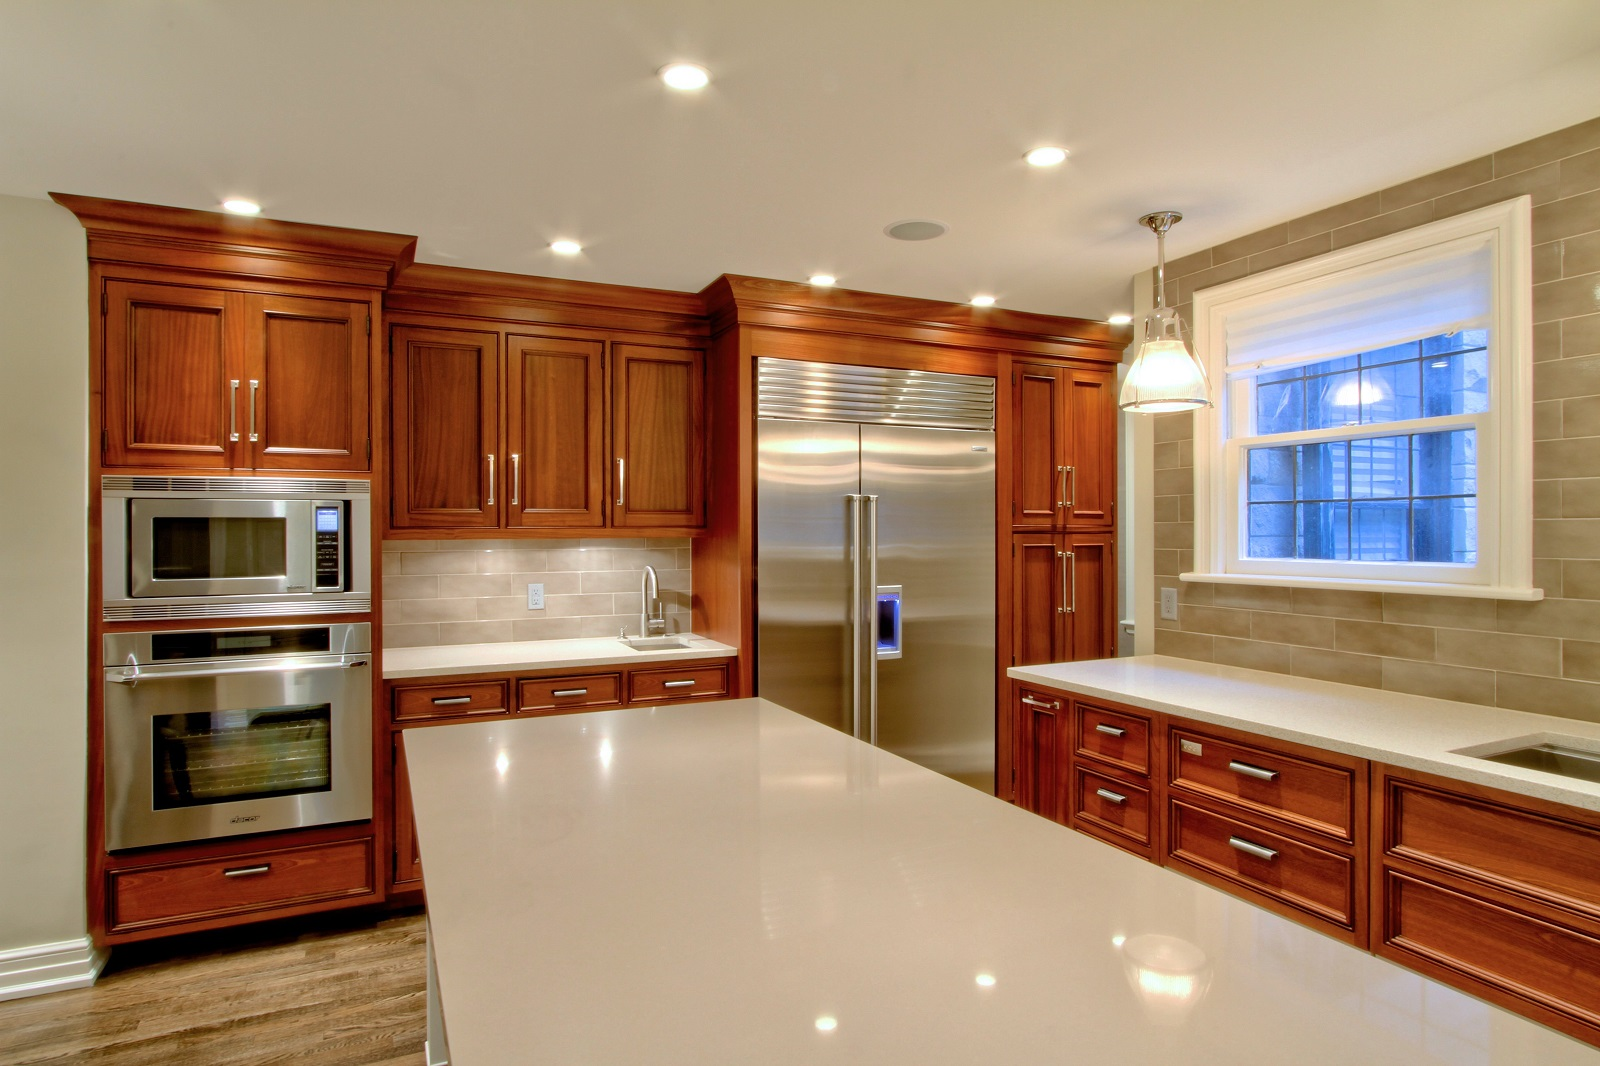 indianapolis kitchen remodeling and design remodeling kitchens Meridian Kessler Kitchen Remodel After